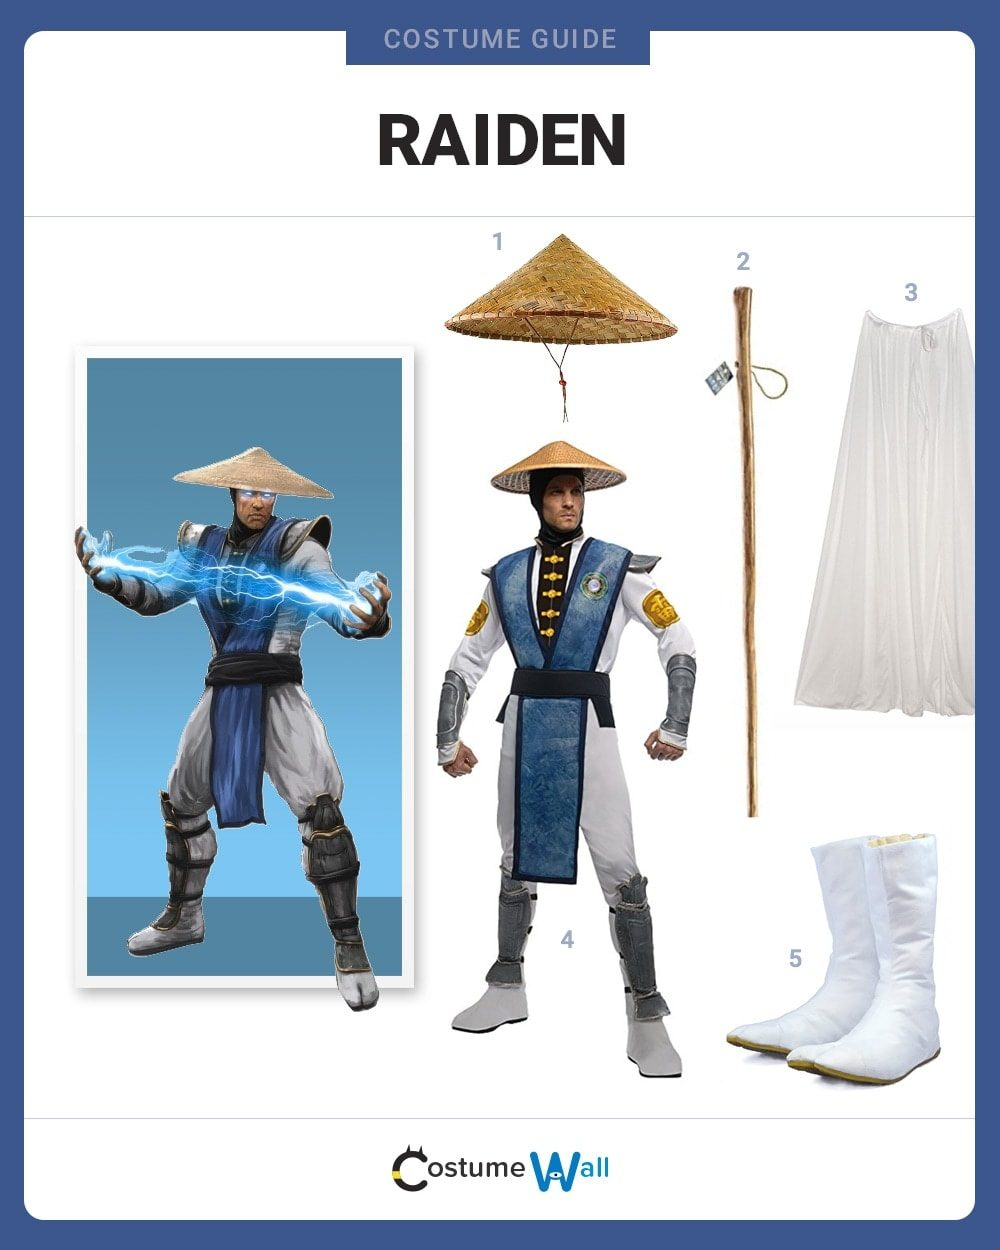 Raiden Costume Guide